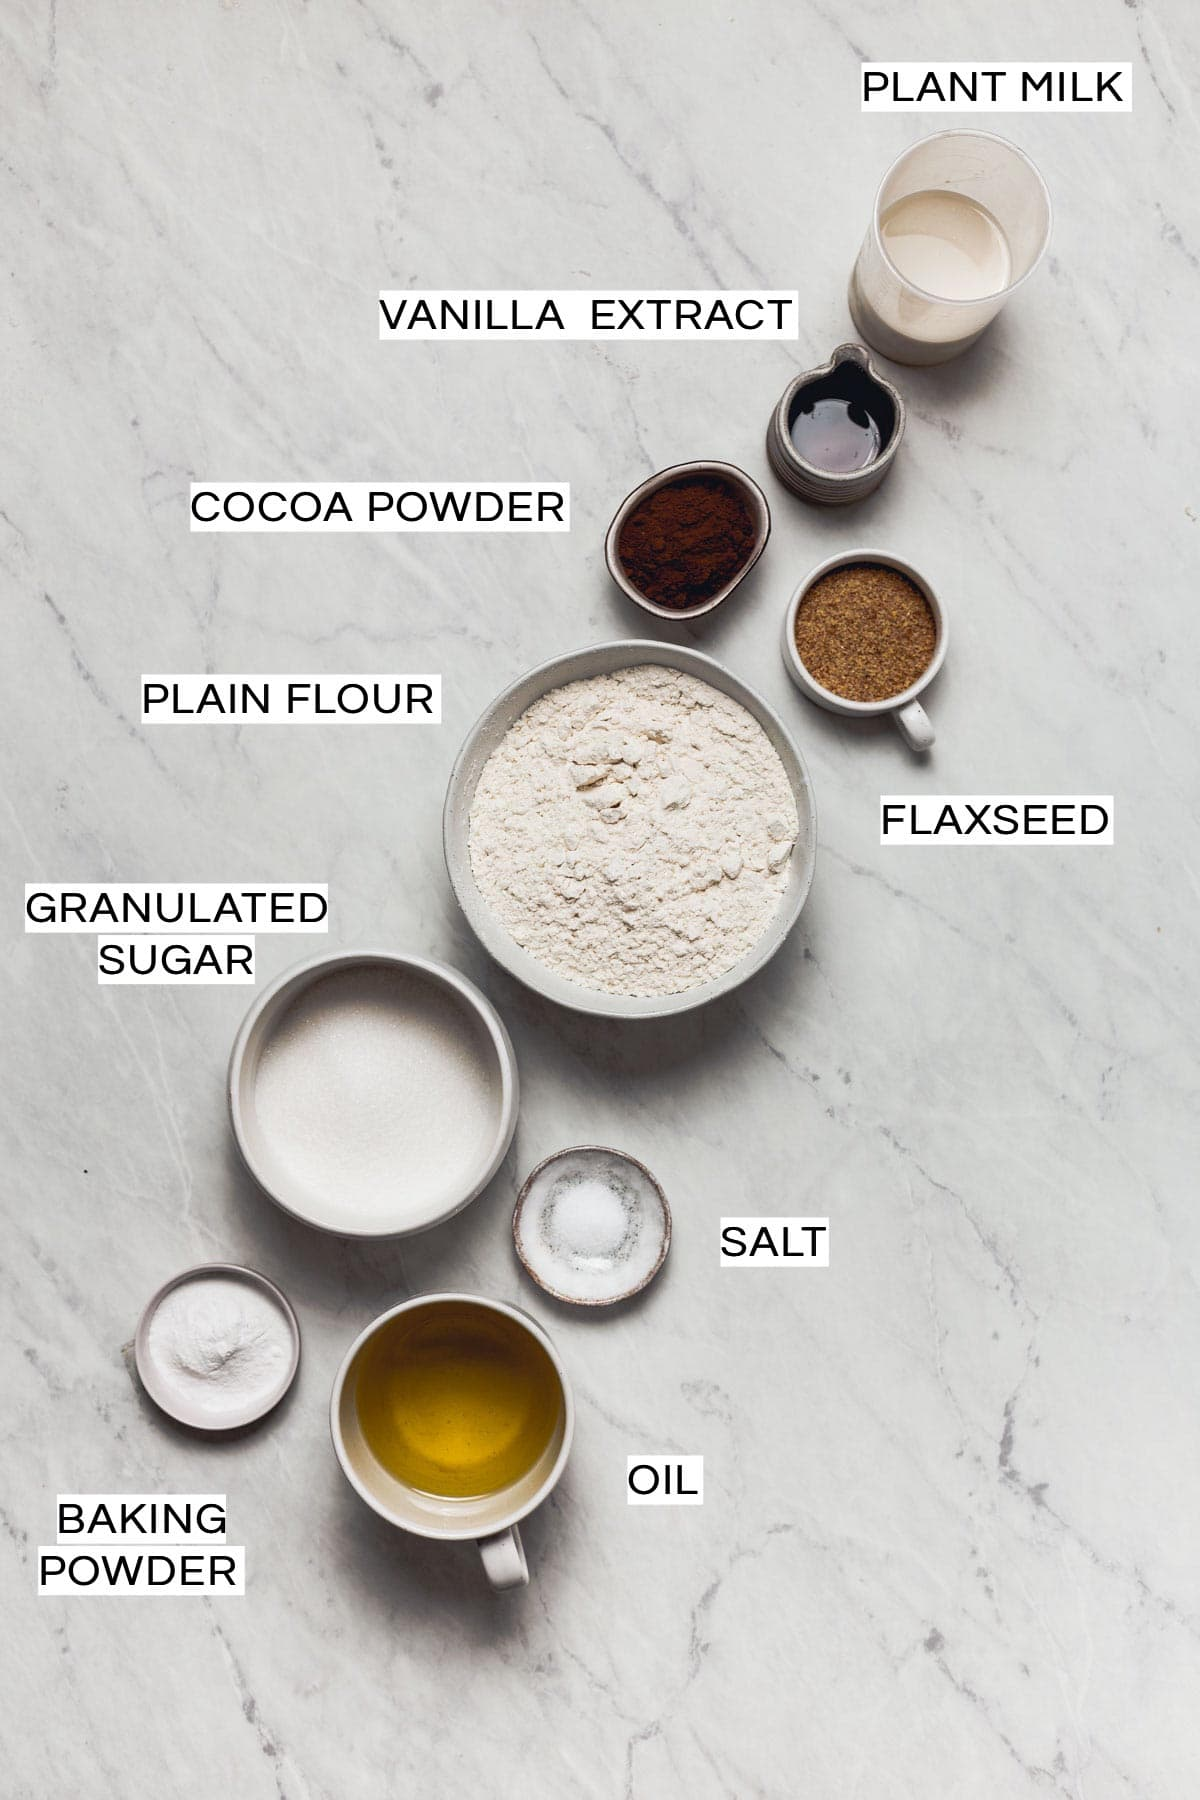 All the ingredients needed to make a coffee cake placed in bowls on a marble background.